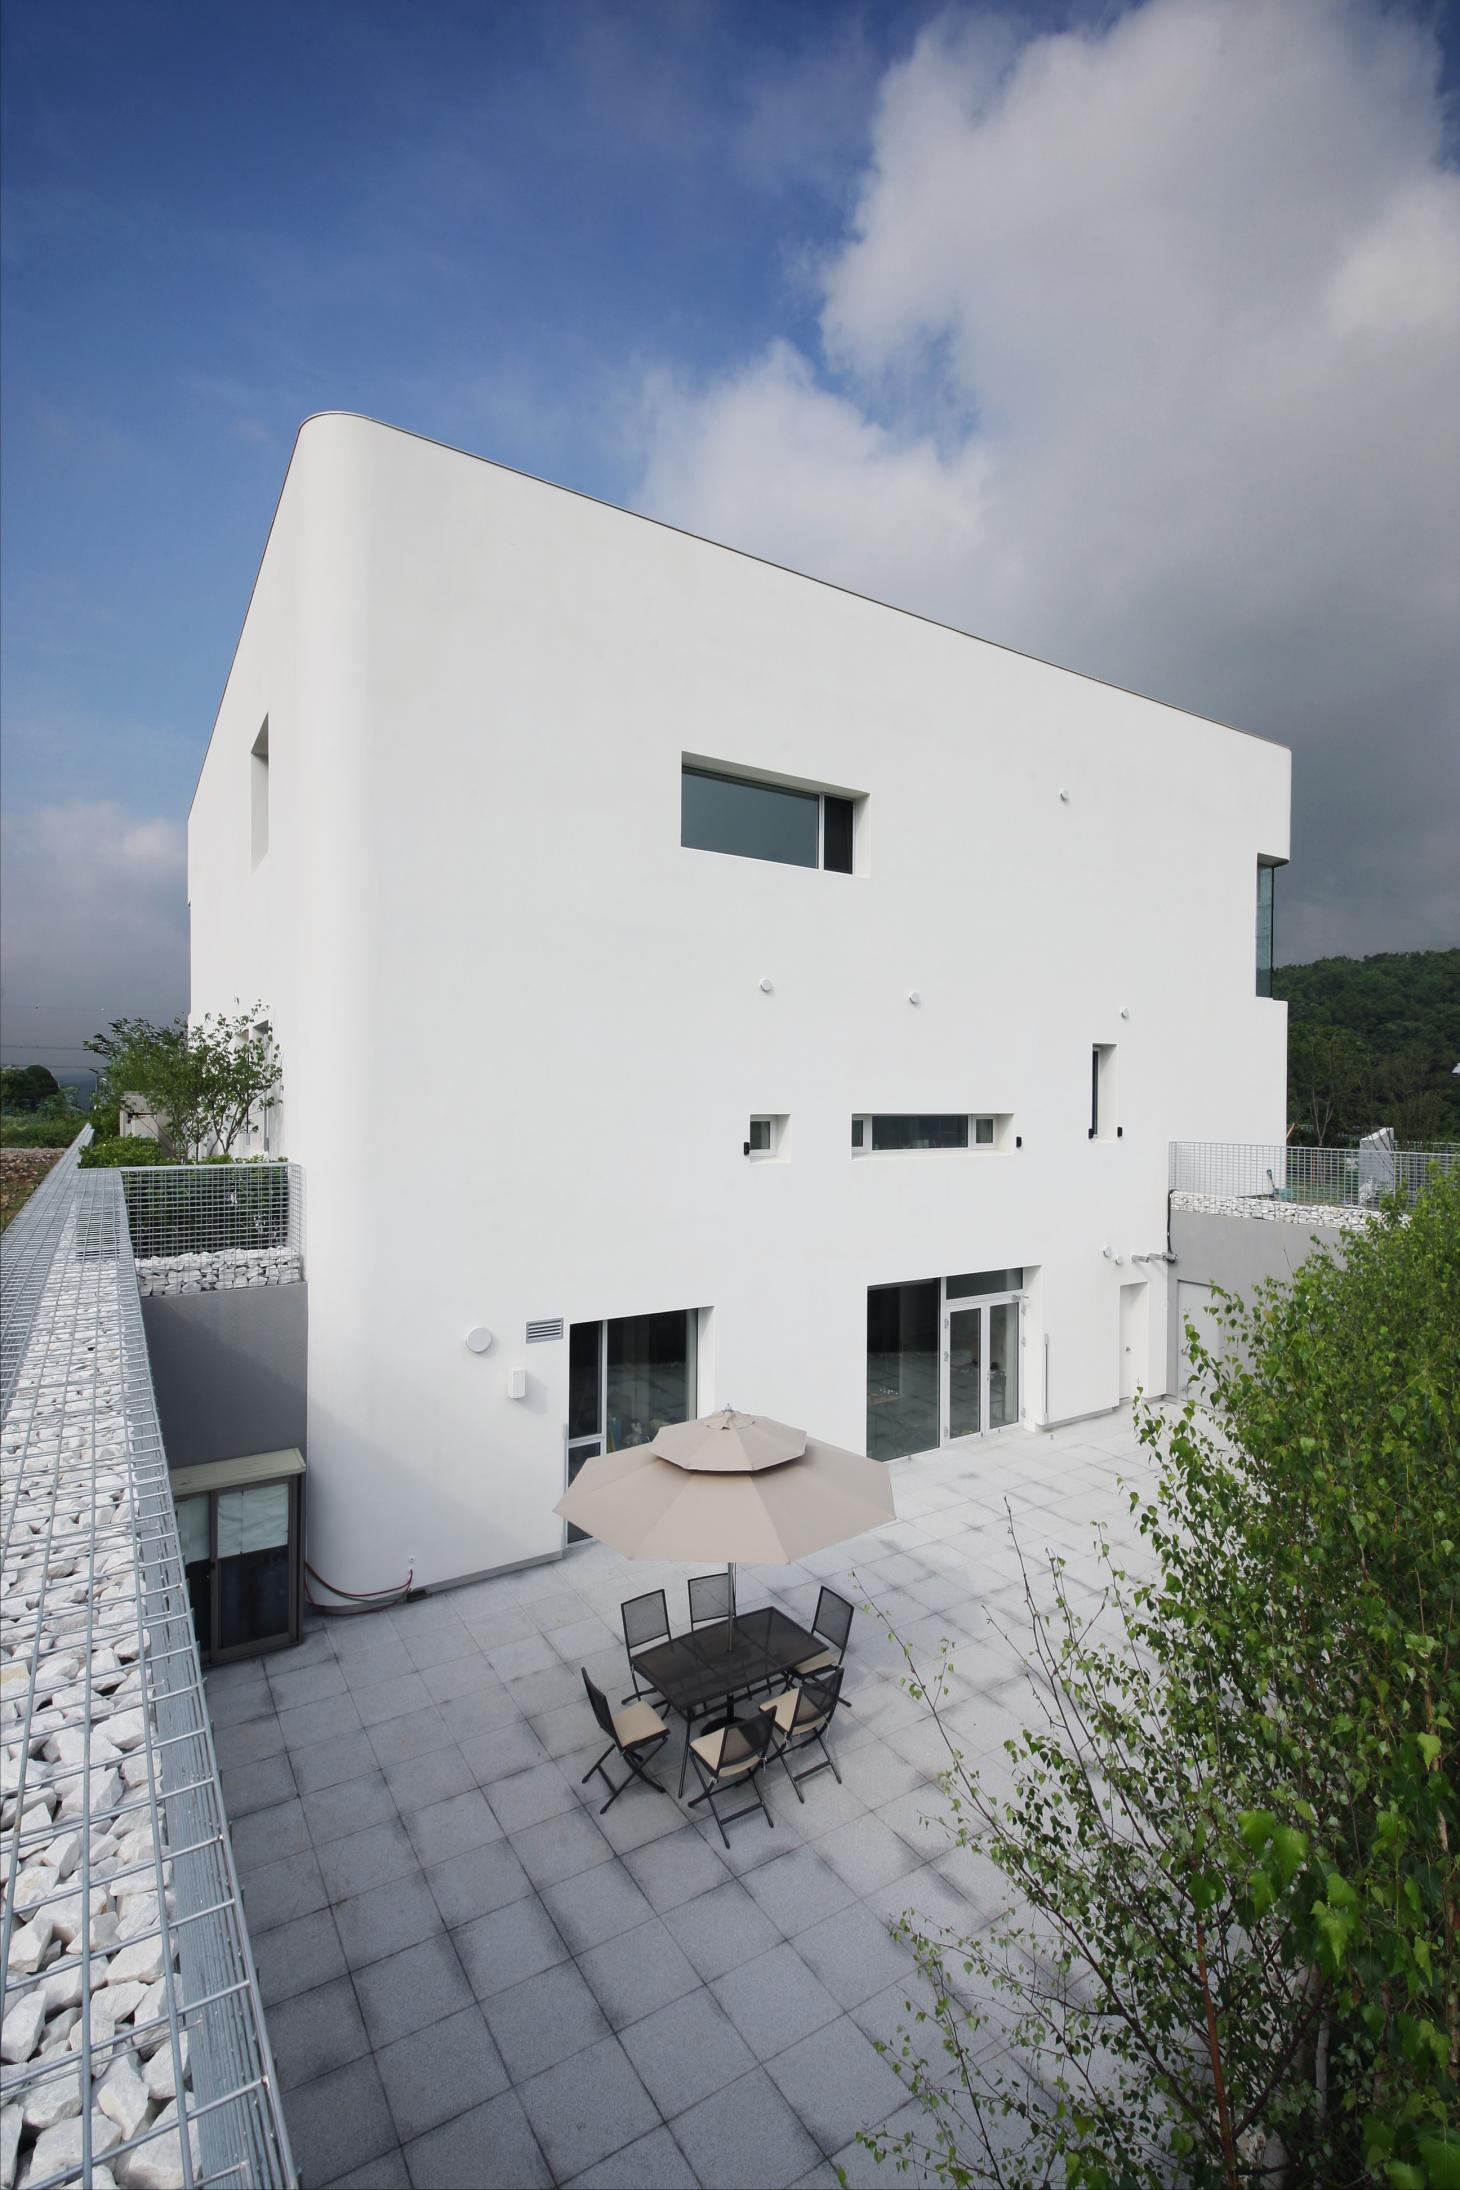 rounded house in South Korea is a white boxy composition with curved corners by architect ChoHelo